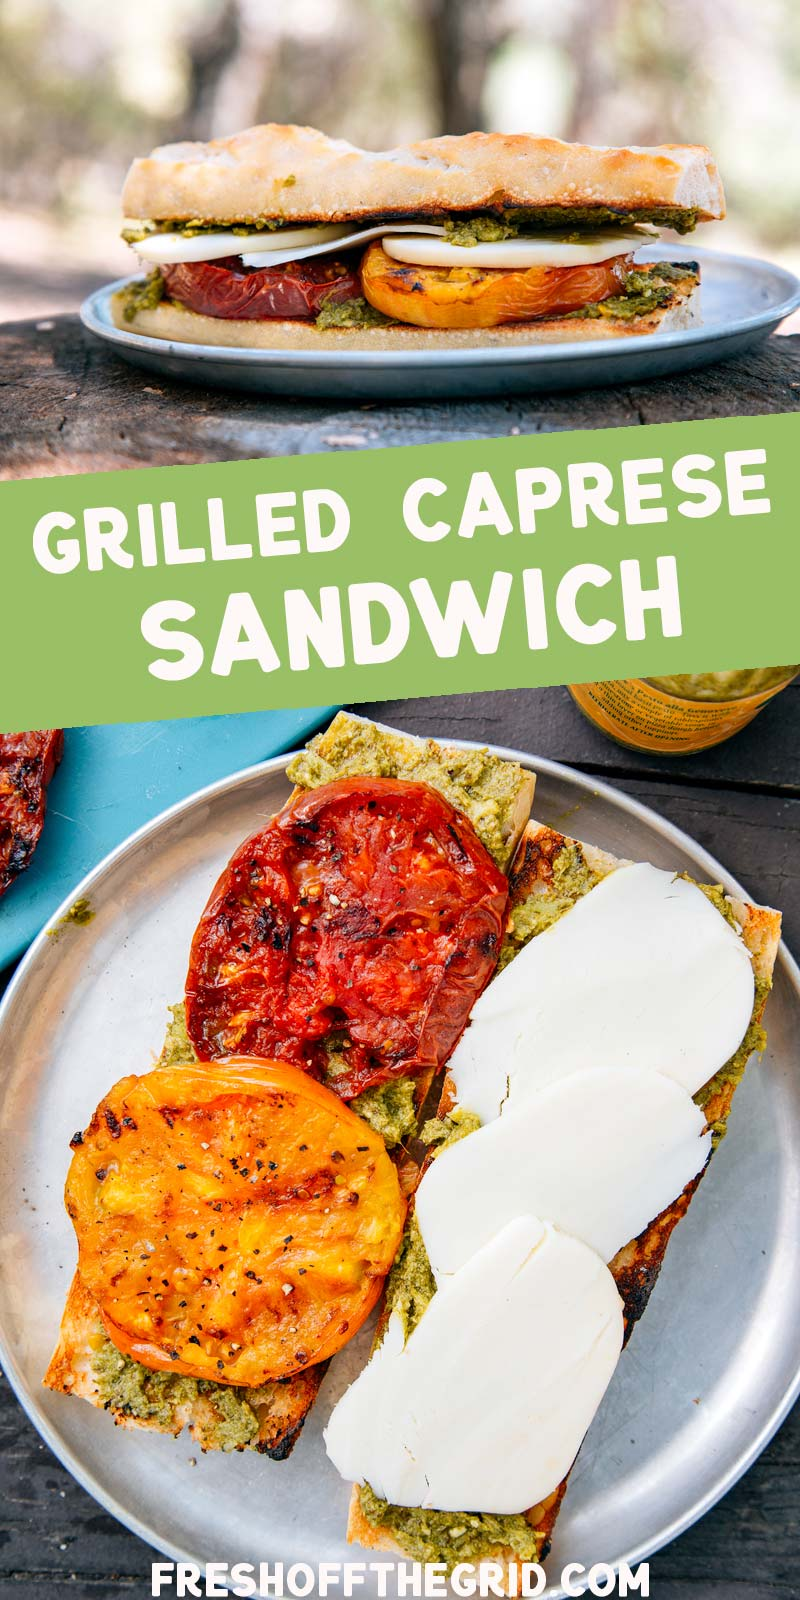 This grilled Caprese sandwich is the perfect summer lunch: perfectly ripe tomatoes, mozzarella cheese, and basil pesto capture all the fresh flavor of summer. This Caprese sandwich is perfect for camping, picnics, and summer BBQ's! via @freshoffthegrid